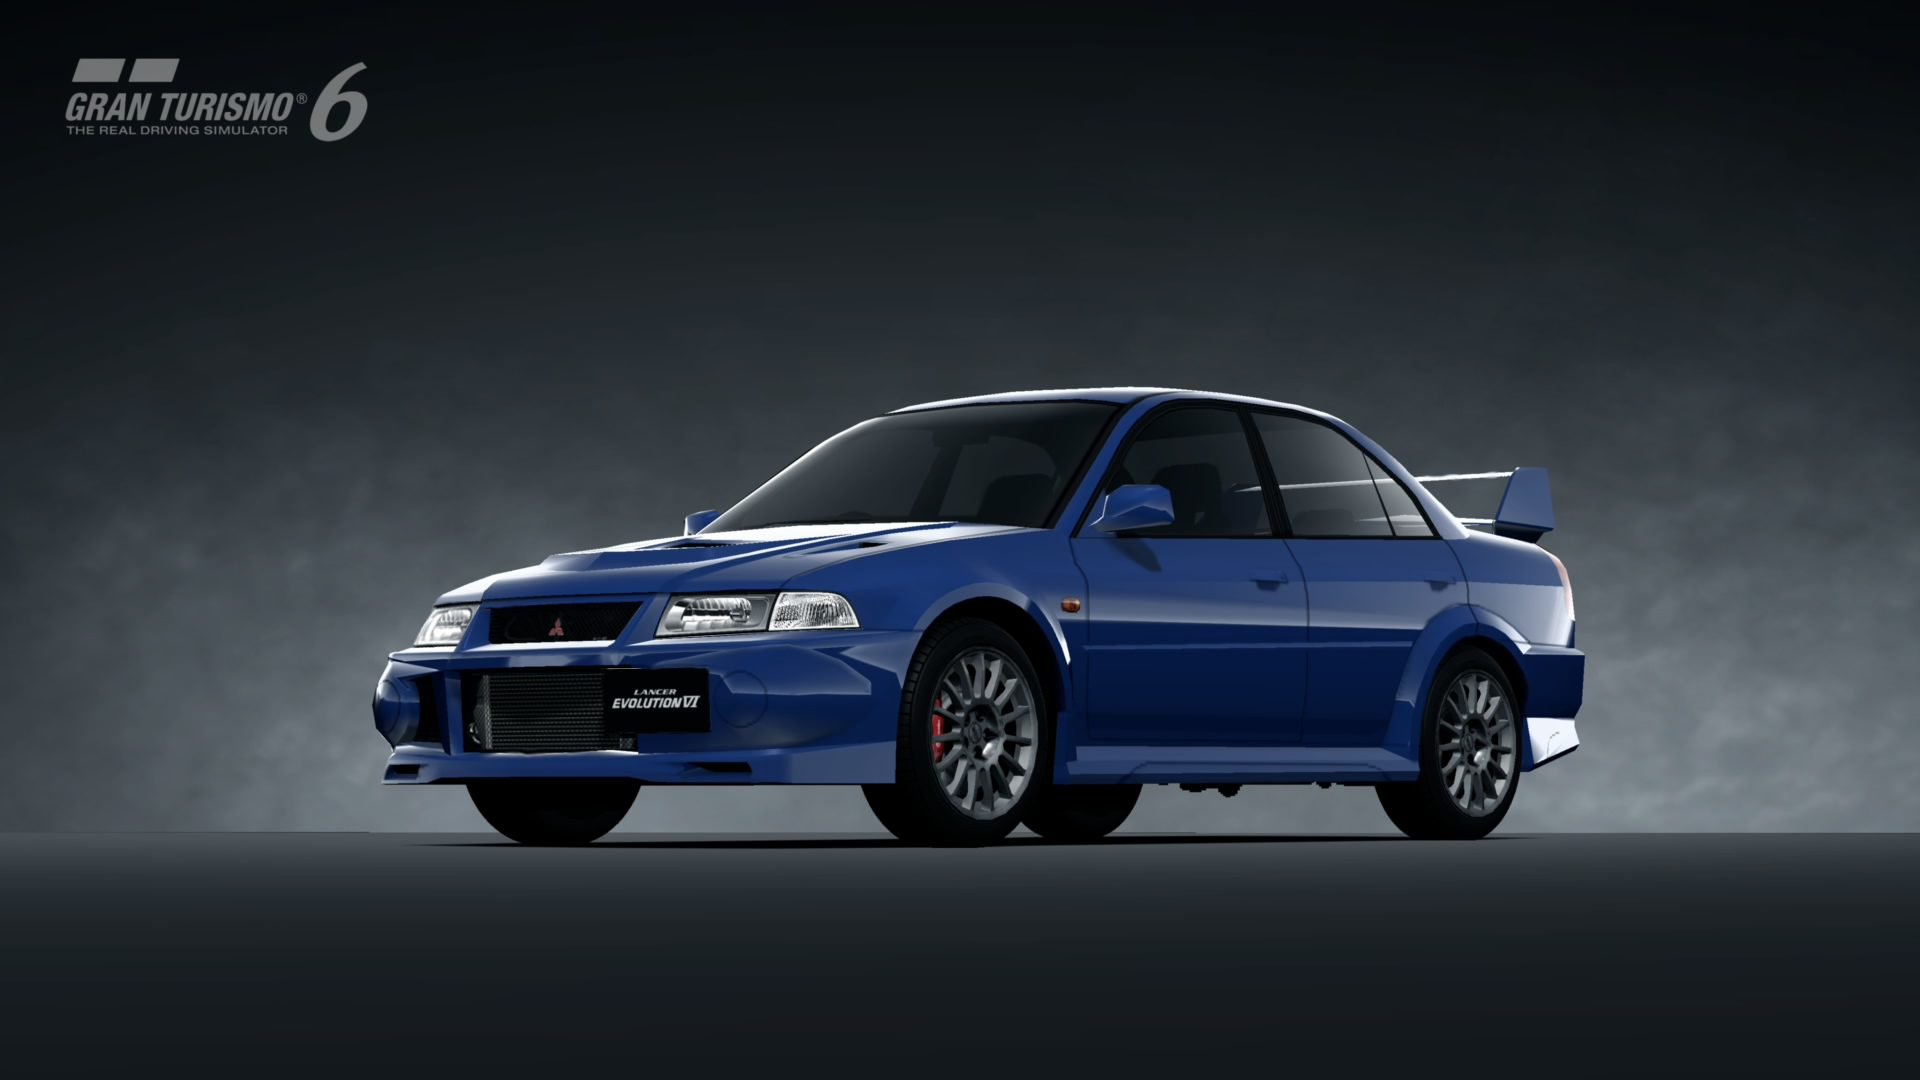 Lancer Evo VI GSR - road to premium 1.jpg